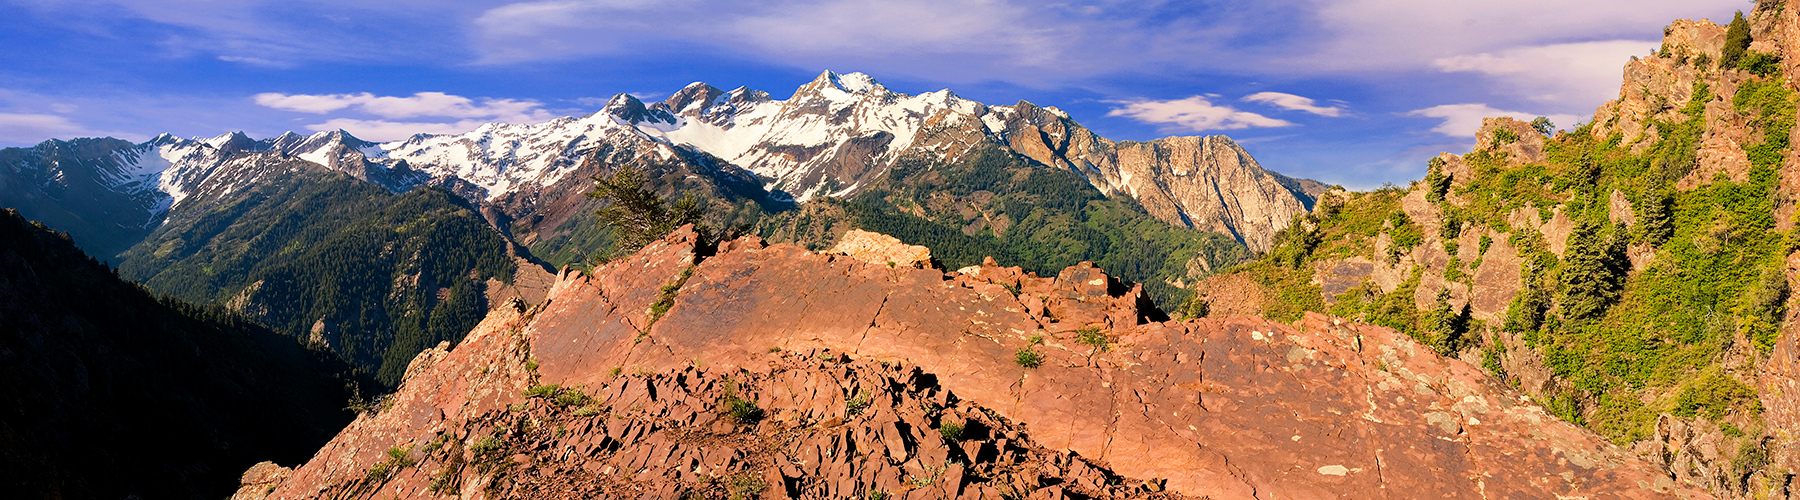 pan25: The Wasatch Mountains in early summer, as seen from one of our favorite hiking destinations in Big Cottonwood Canyon